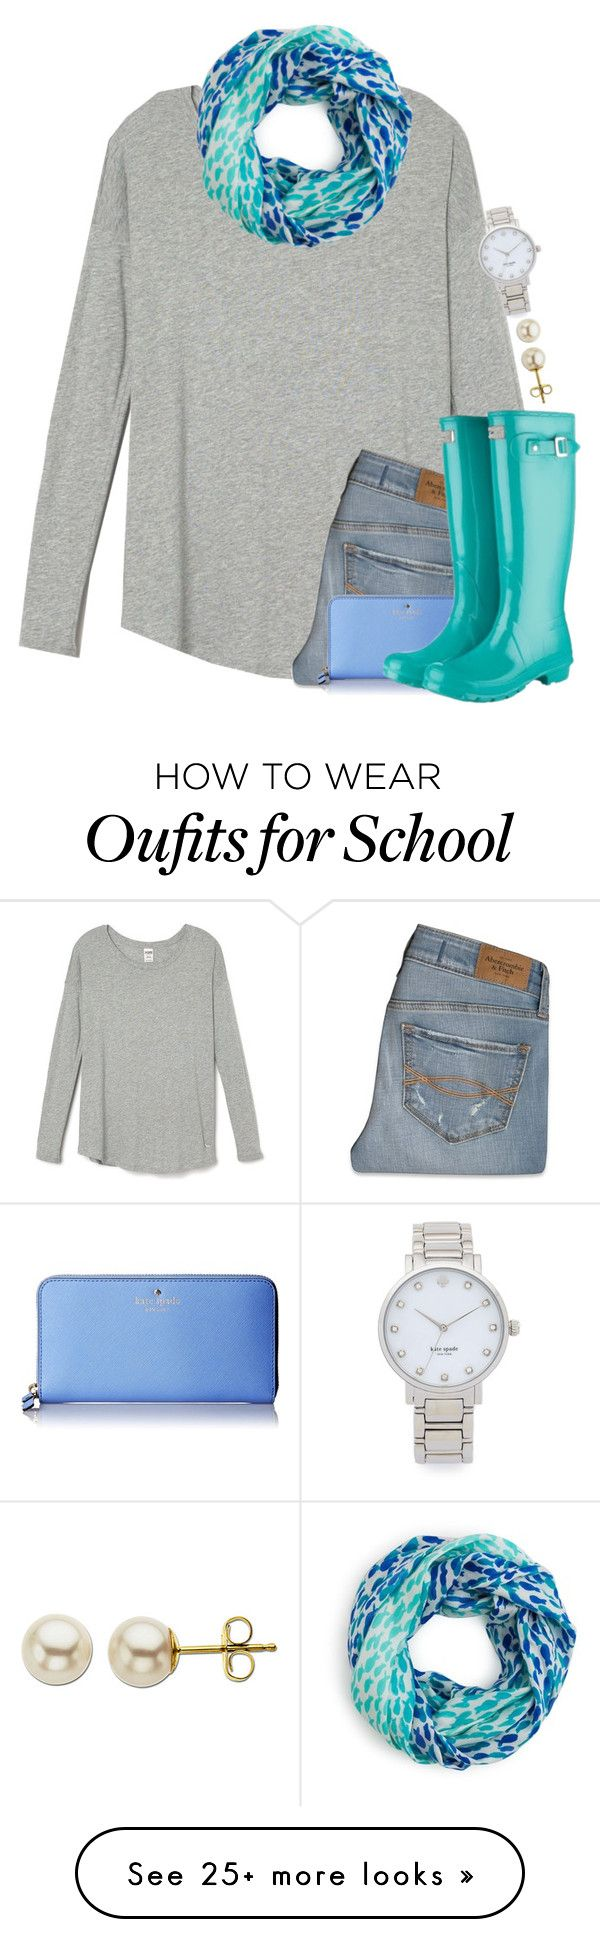 """Let's be birds, oh oh oh, where you wanna go just say the words"" by meljordrum on Polyvore featuring Abercrombie & Fitch, Kate Spade and Lord & Taylor"